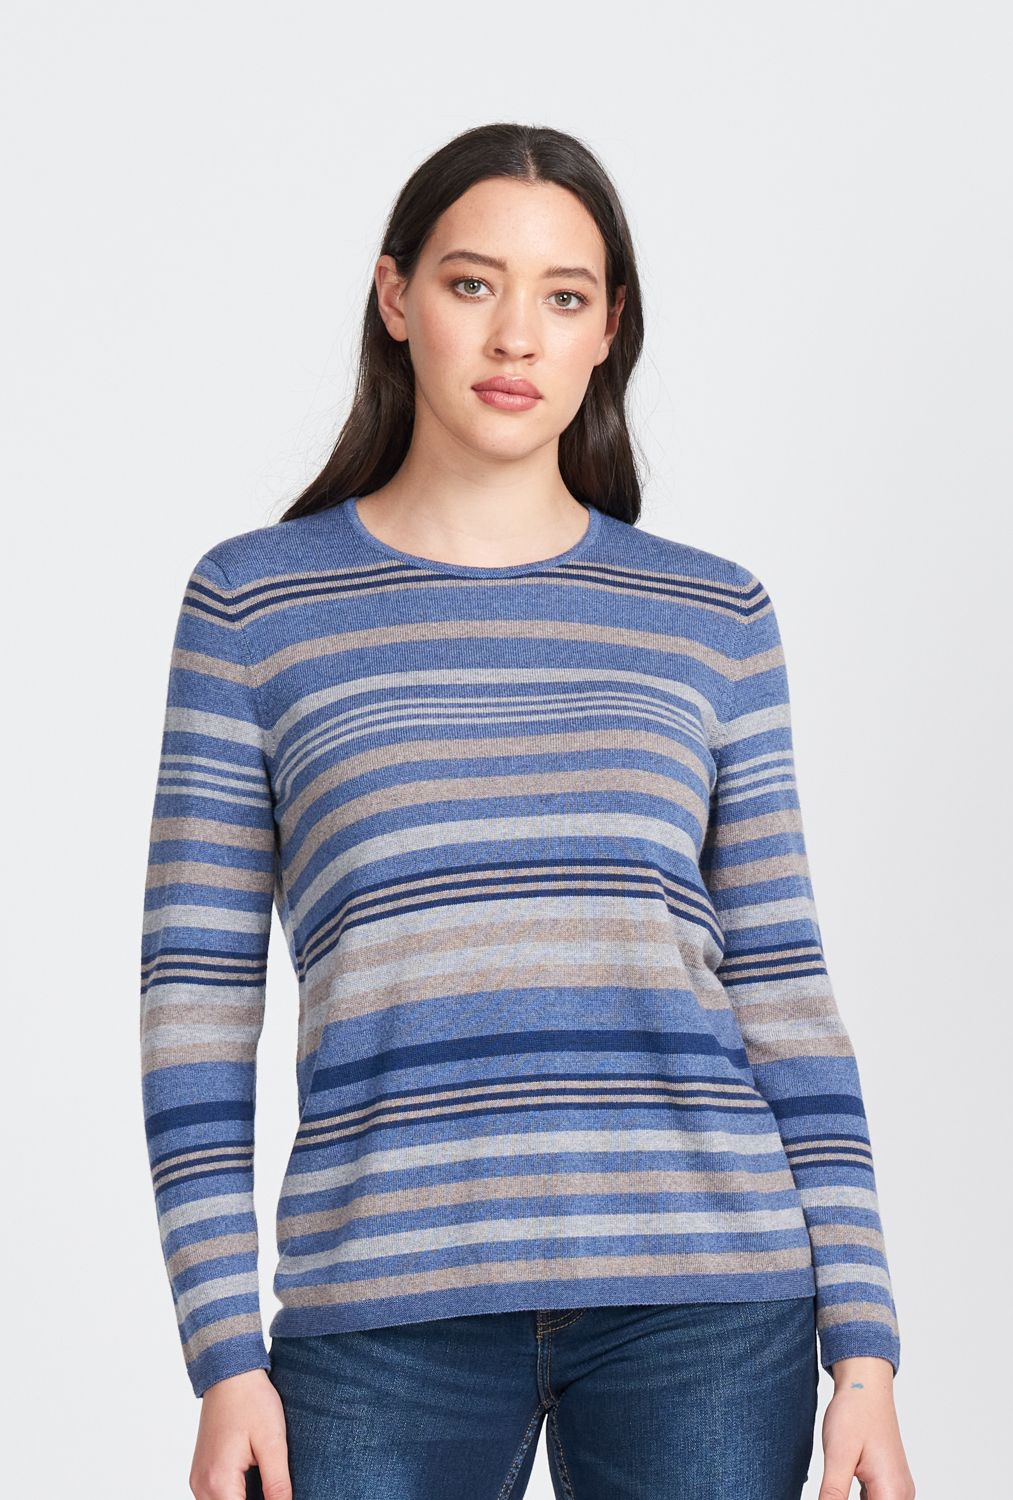 Merino Wool Multi Stripe Jumper - Royal Merino